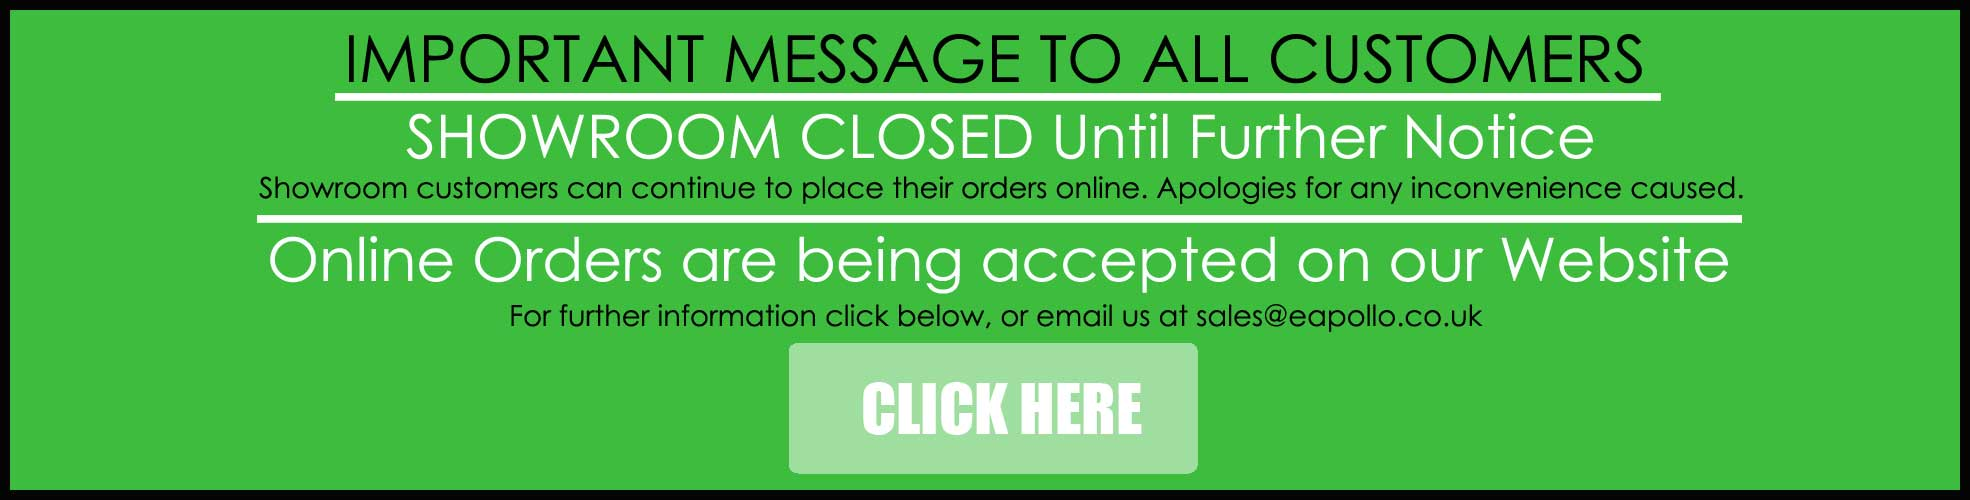 Important message to all our Showroom & Website Customers Showroom is CLOSED until further notice Please place orders online, by email or by phone. Website Orders are still being accepted. For more information, please email us at sales@eapollo.co.uk